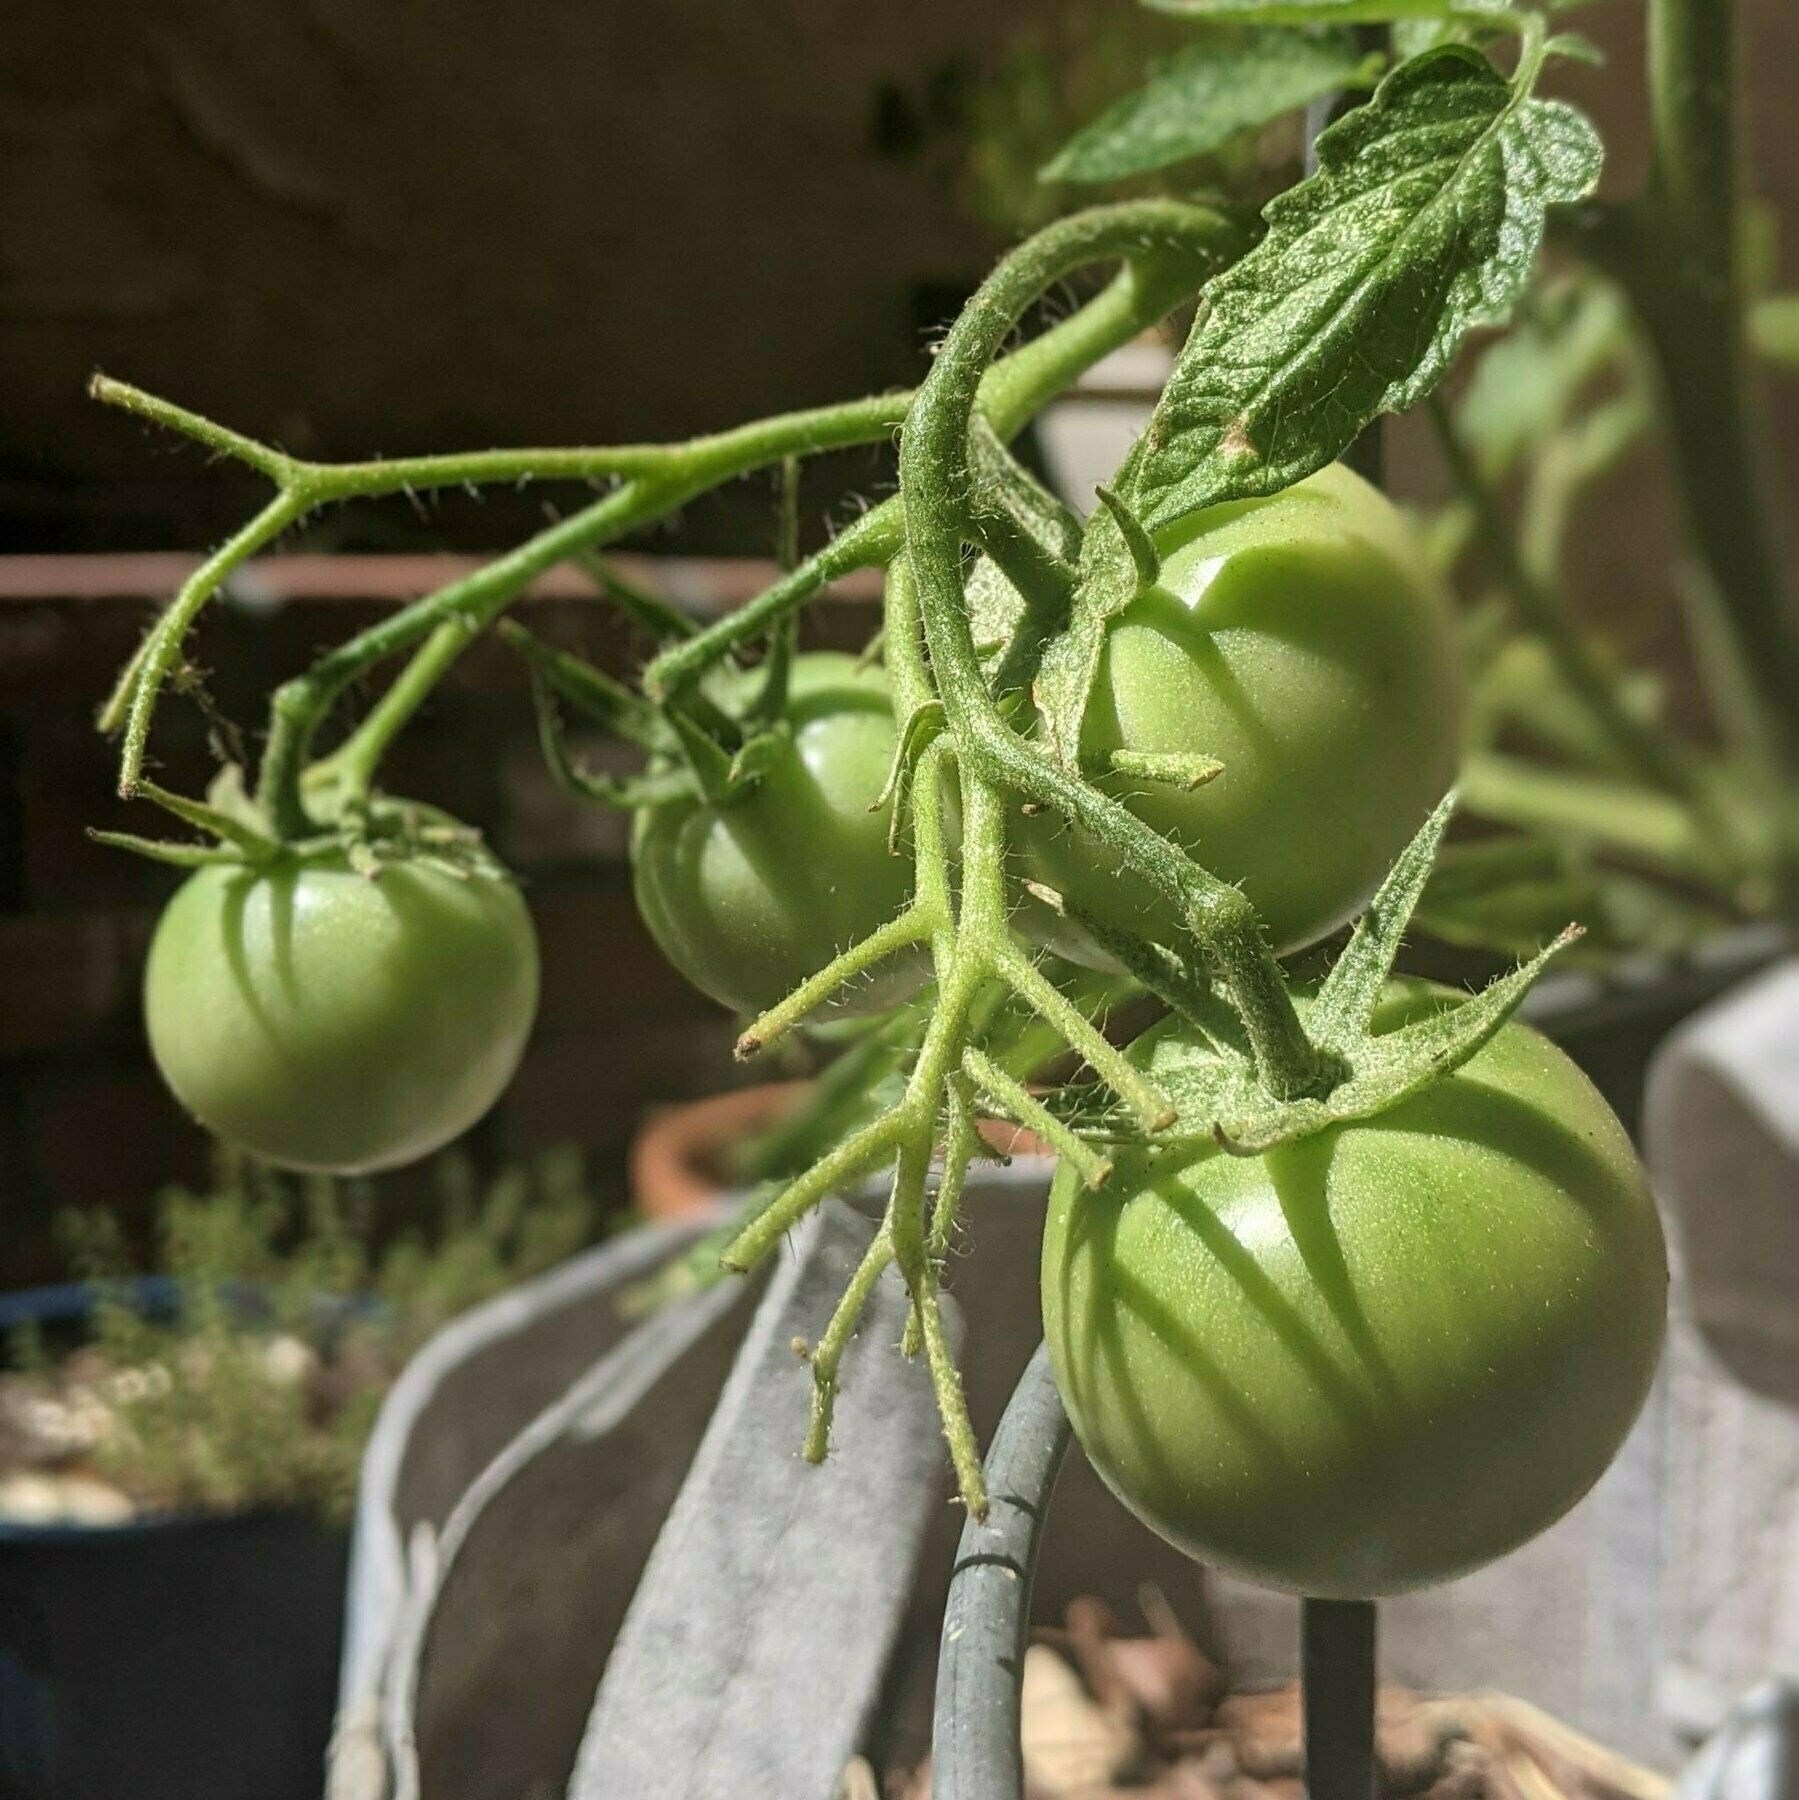 Close up of four green tomatoes growing on the vine.